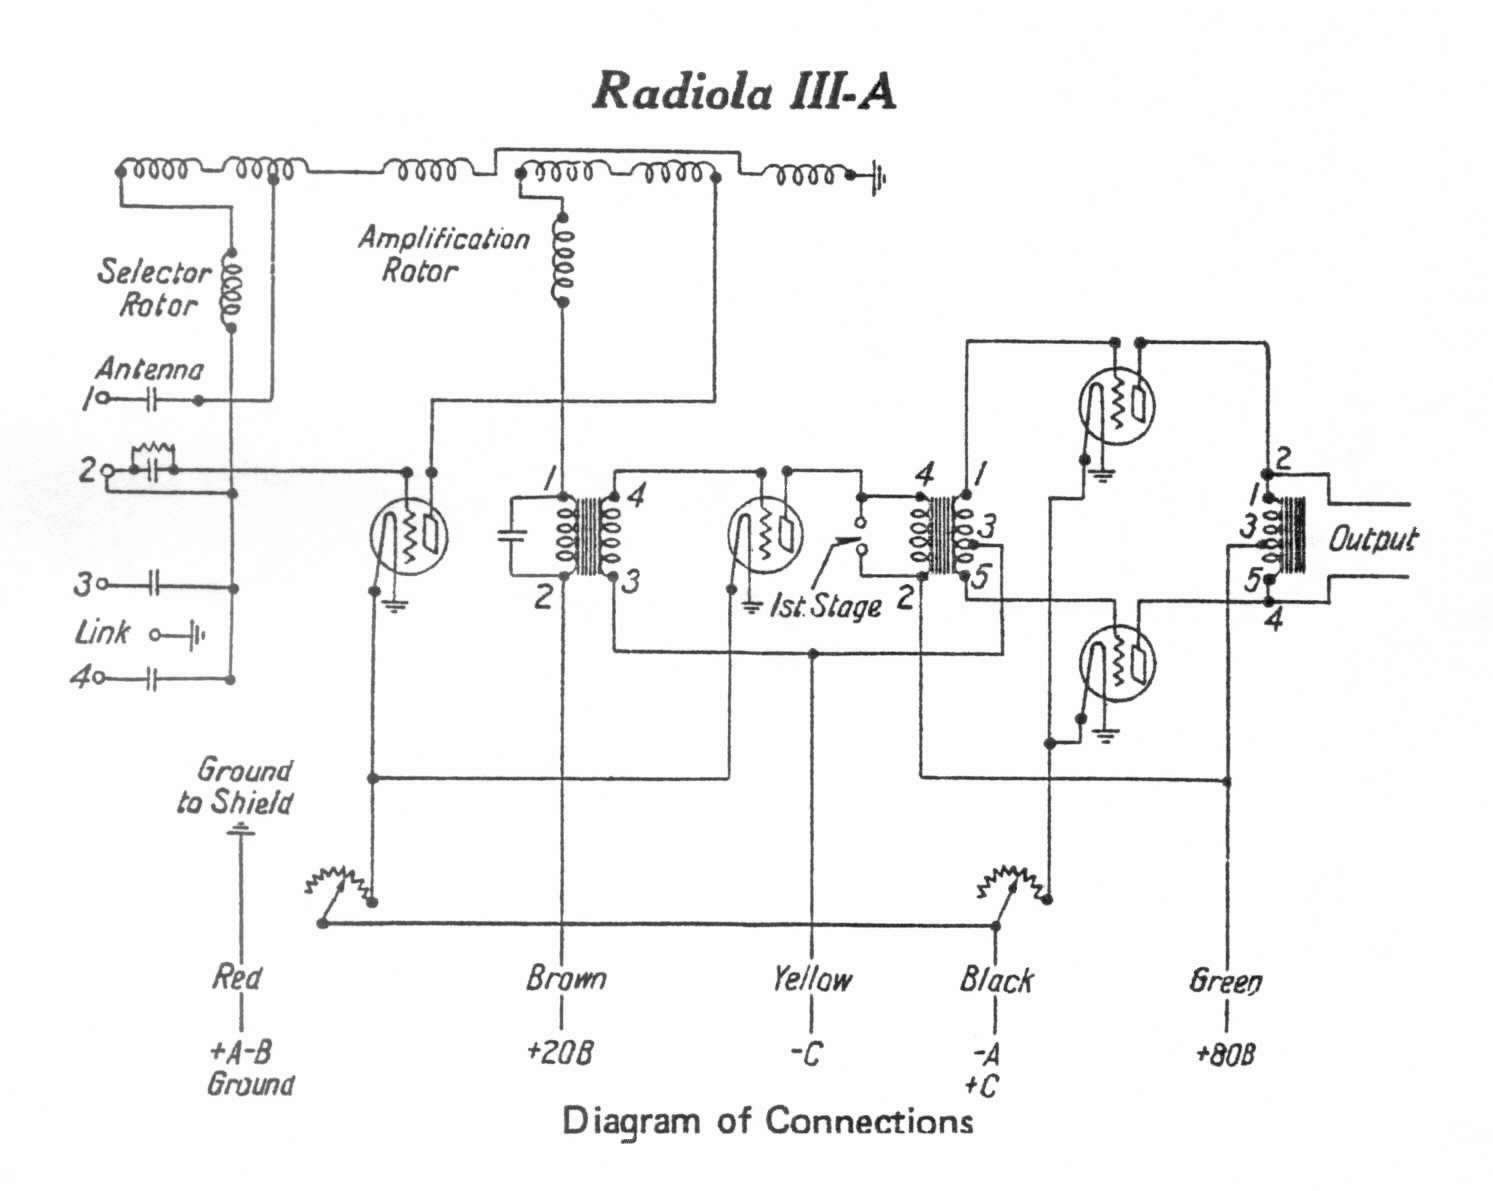 My Hf Receiver Collection Booster Antenna Circuit 550khz To 1650khz Radiola Iii A Schematic